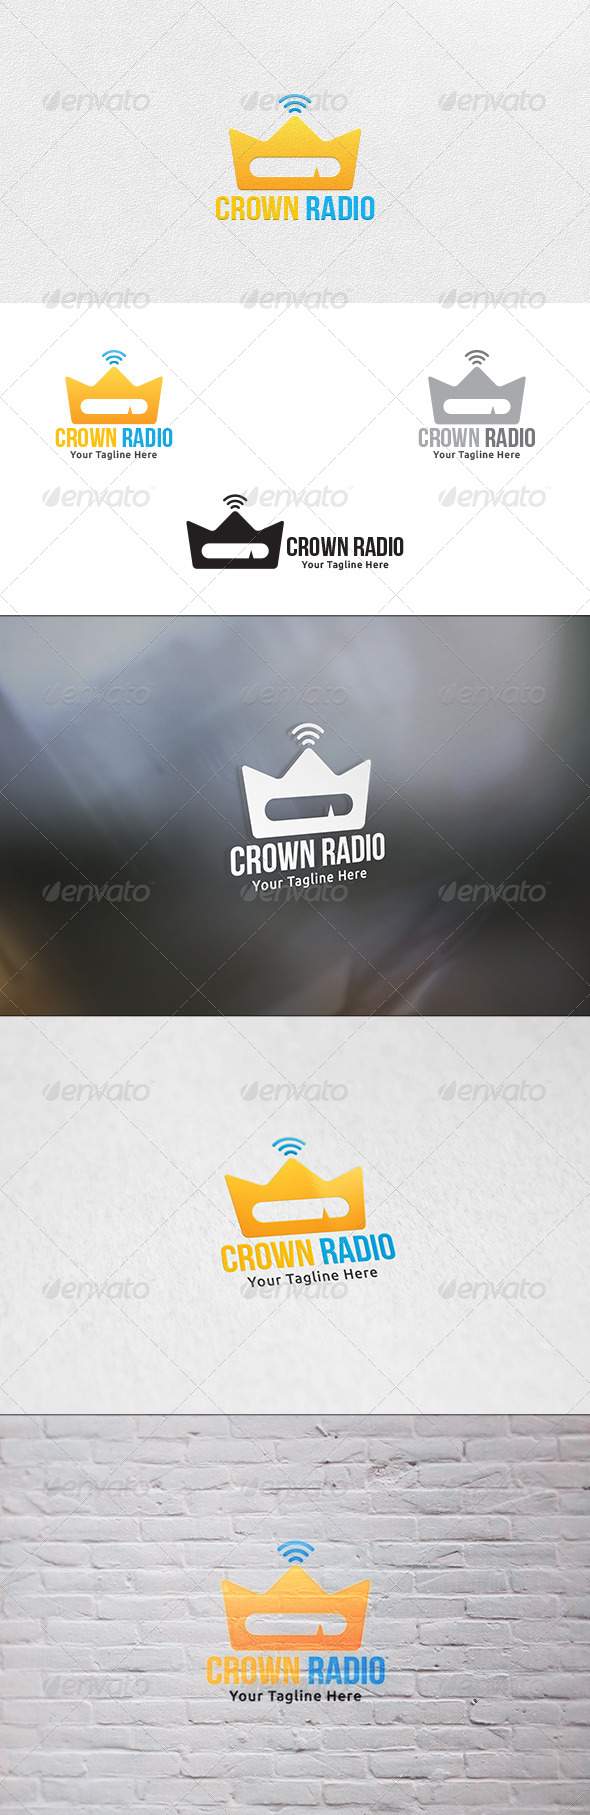 GraphicRiver Crown Radio Logo Template 6926146